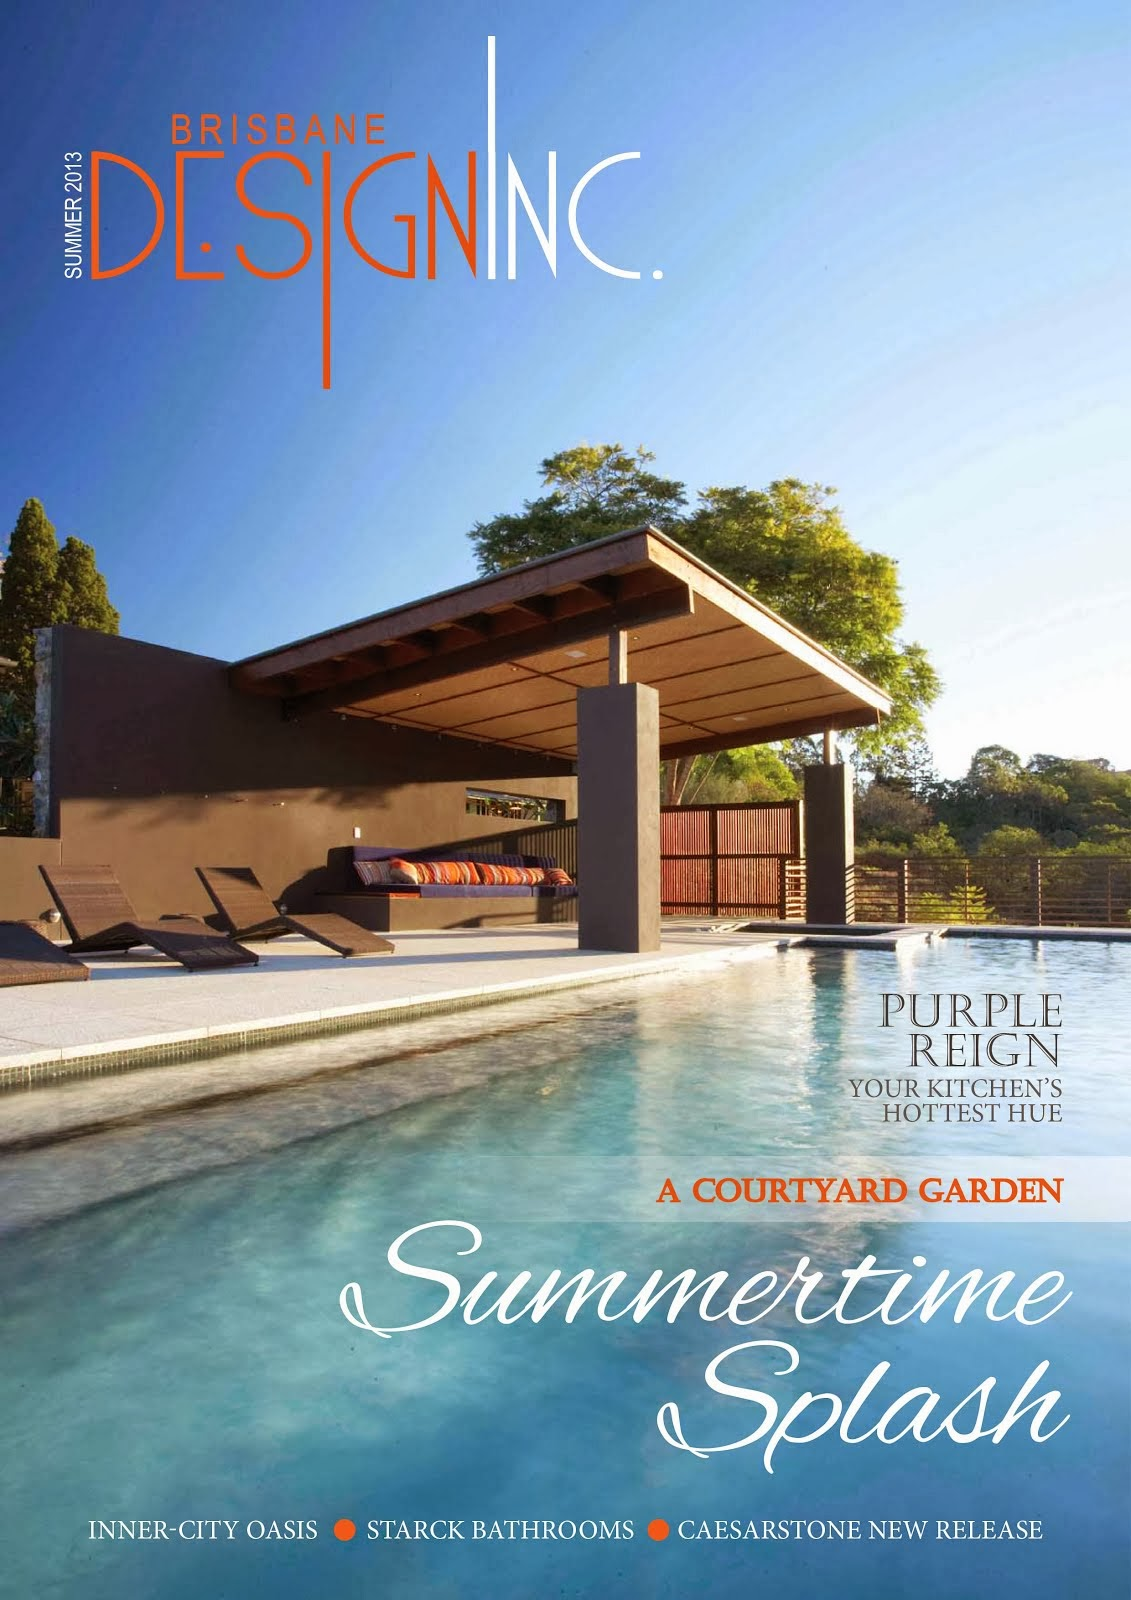 Brisbane Design Inc. Magazine